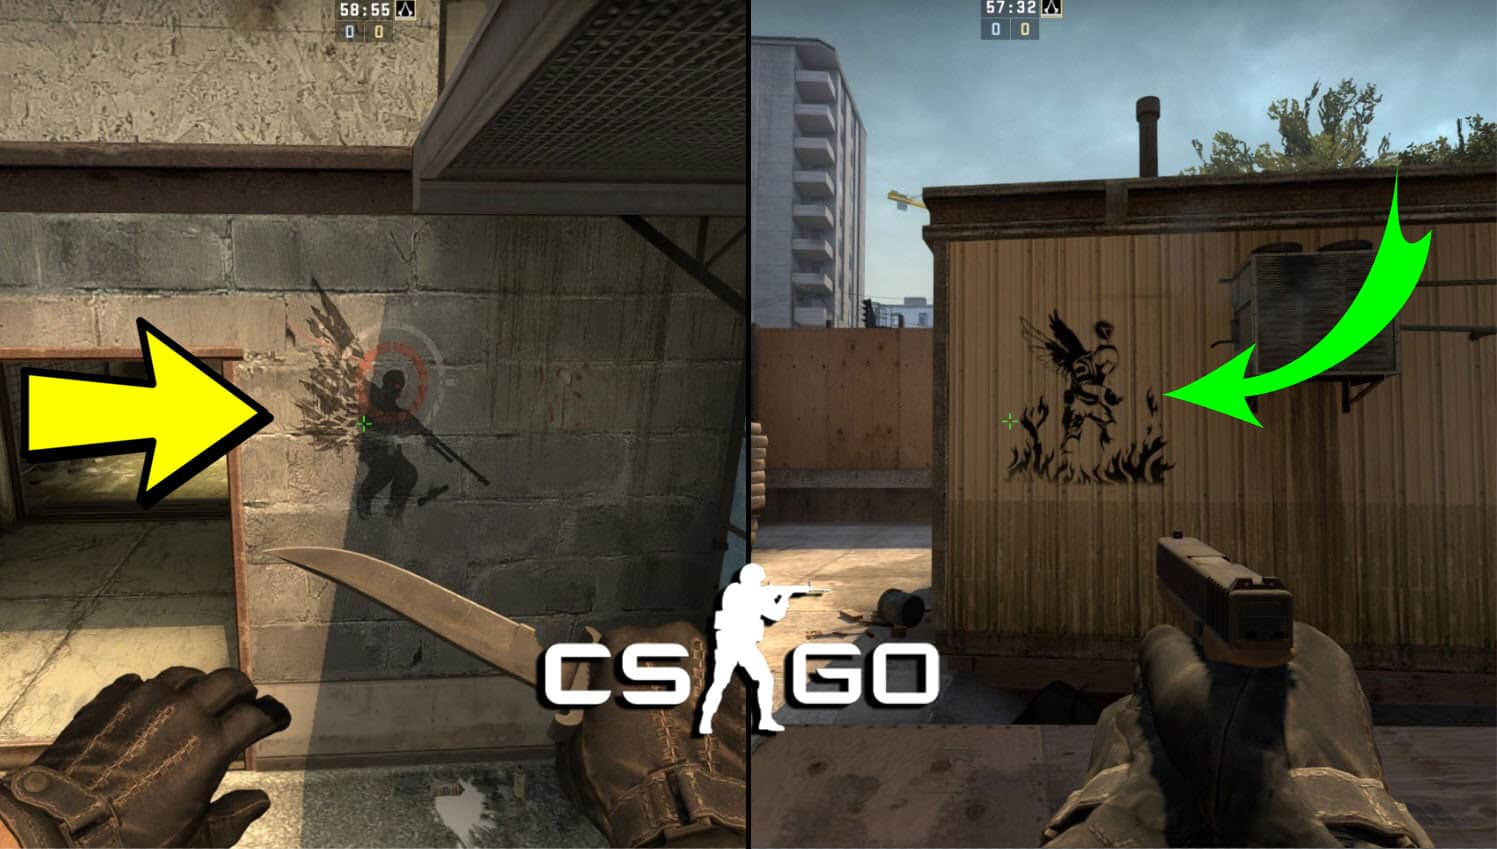 Stories Of CSGO Graffiti